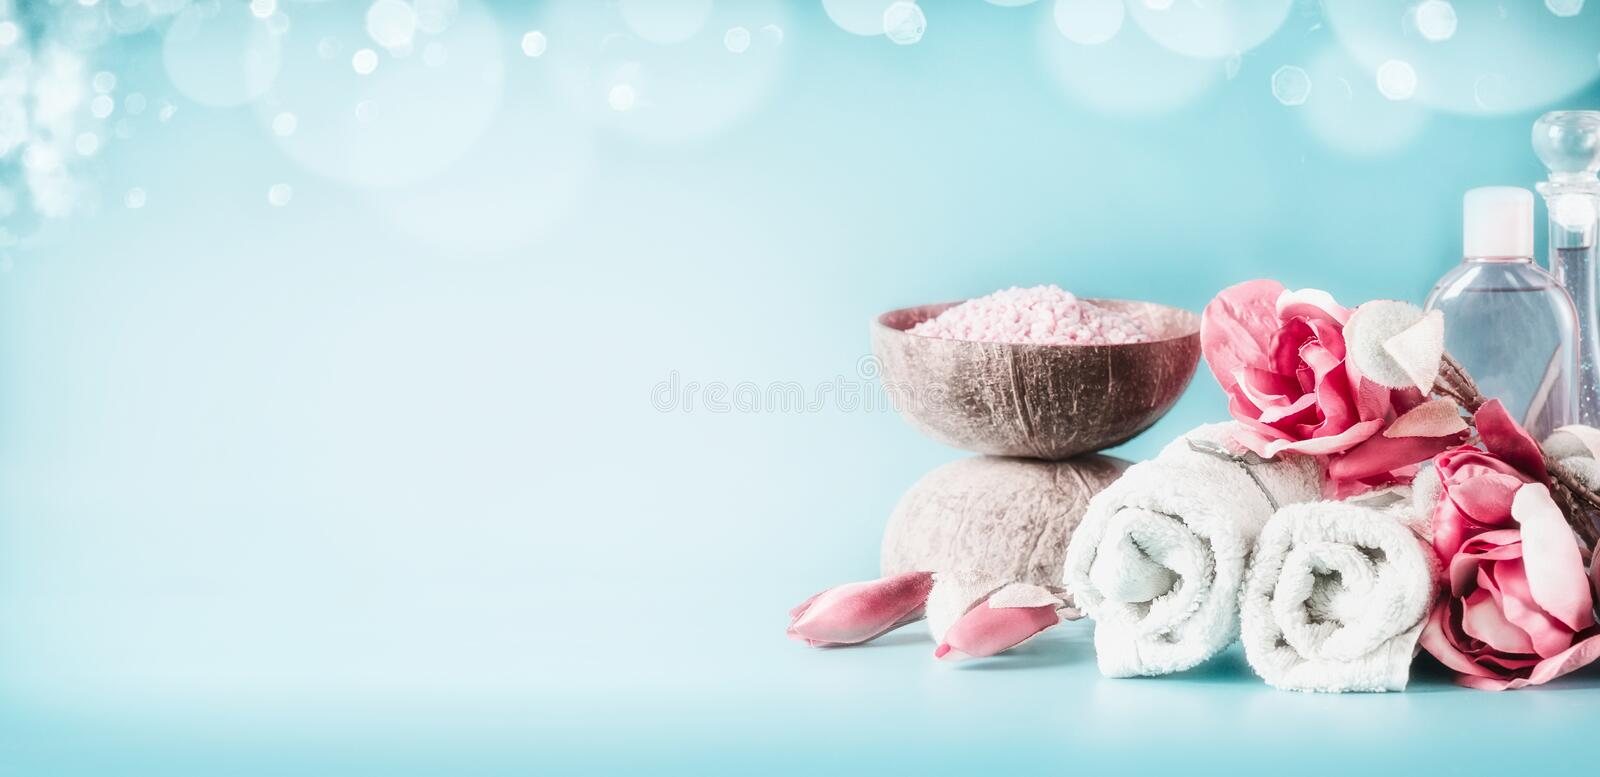 Beautiful pink white spa setting with towels, flowers, candles, sea salt and body care cosmetics at light blue background with royalty free stock image